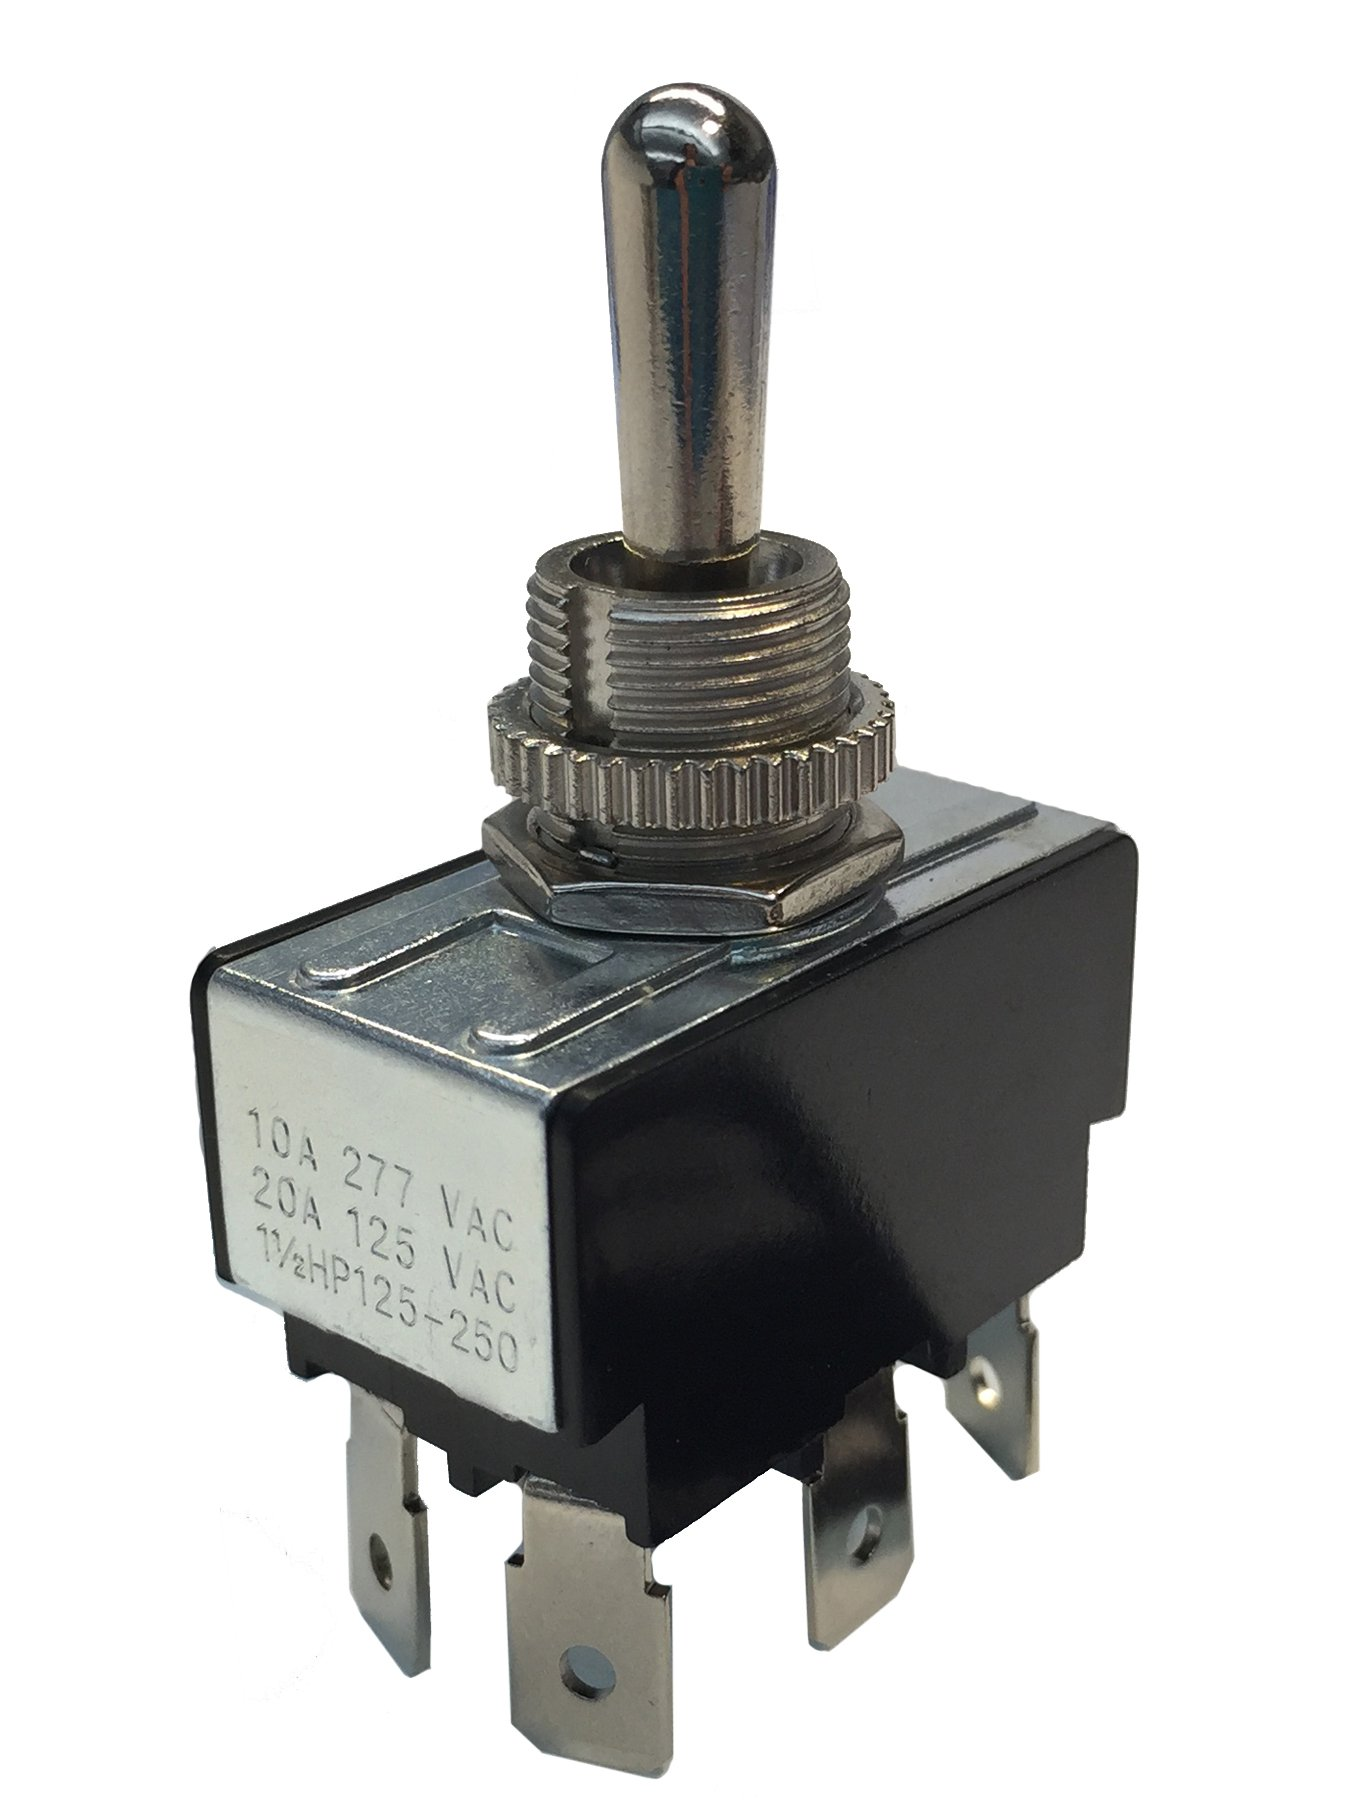 Gardner Bender GSW-126 Electrical Toggle Switch, DPDT, ON-OFF-ON 10 A/125V AC, O Ring Terminal